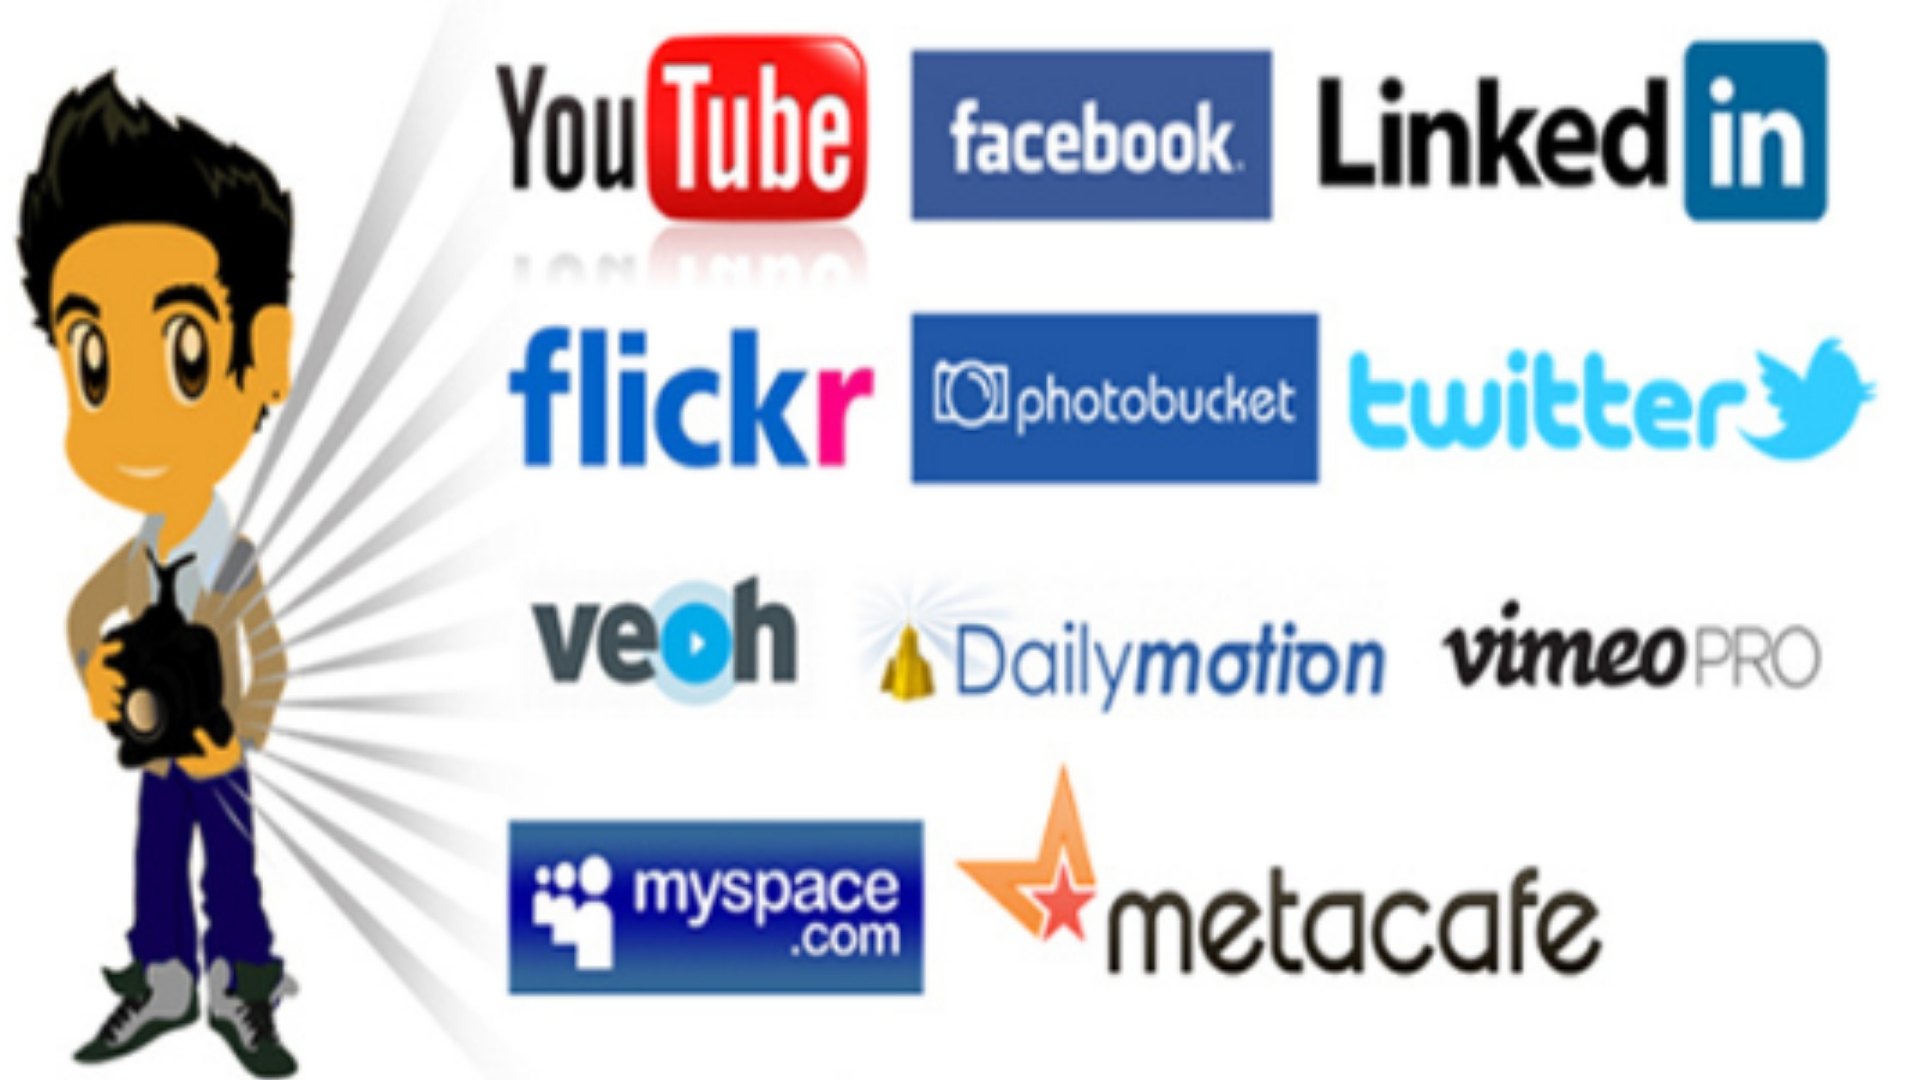 Submit your video into top 75 video submission sites and also increase traffic